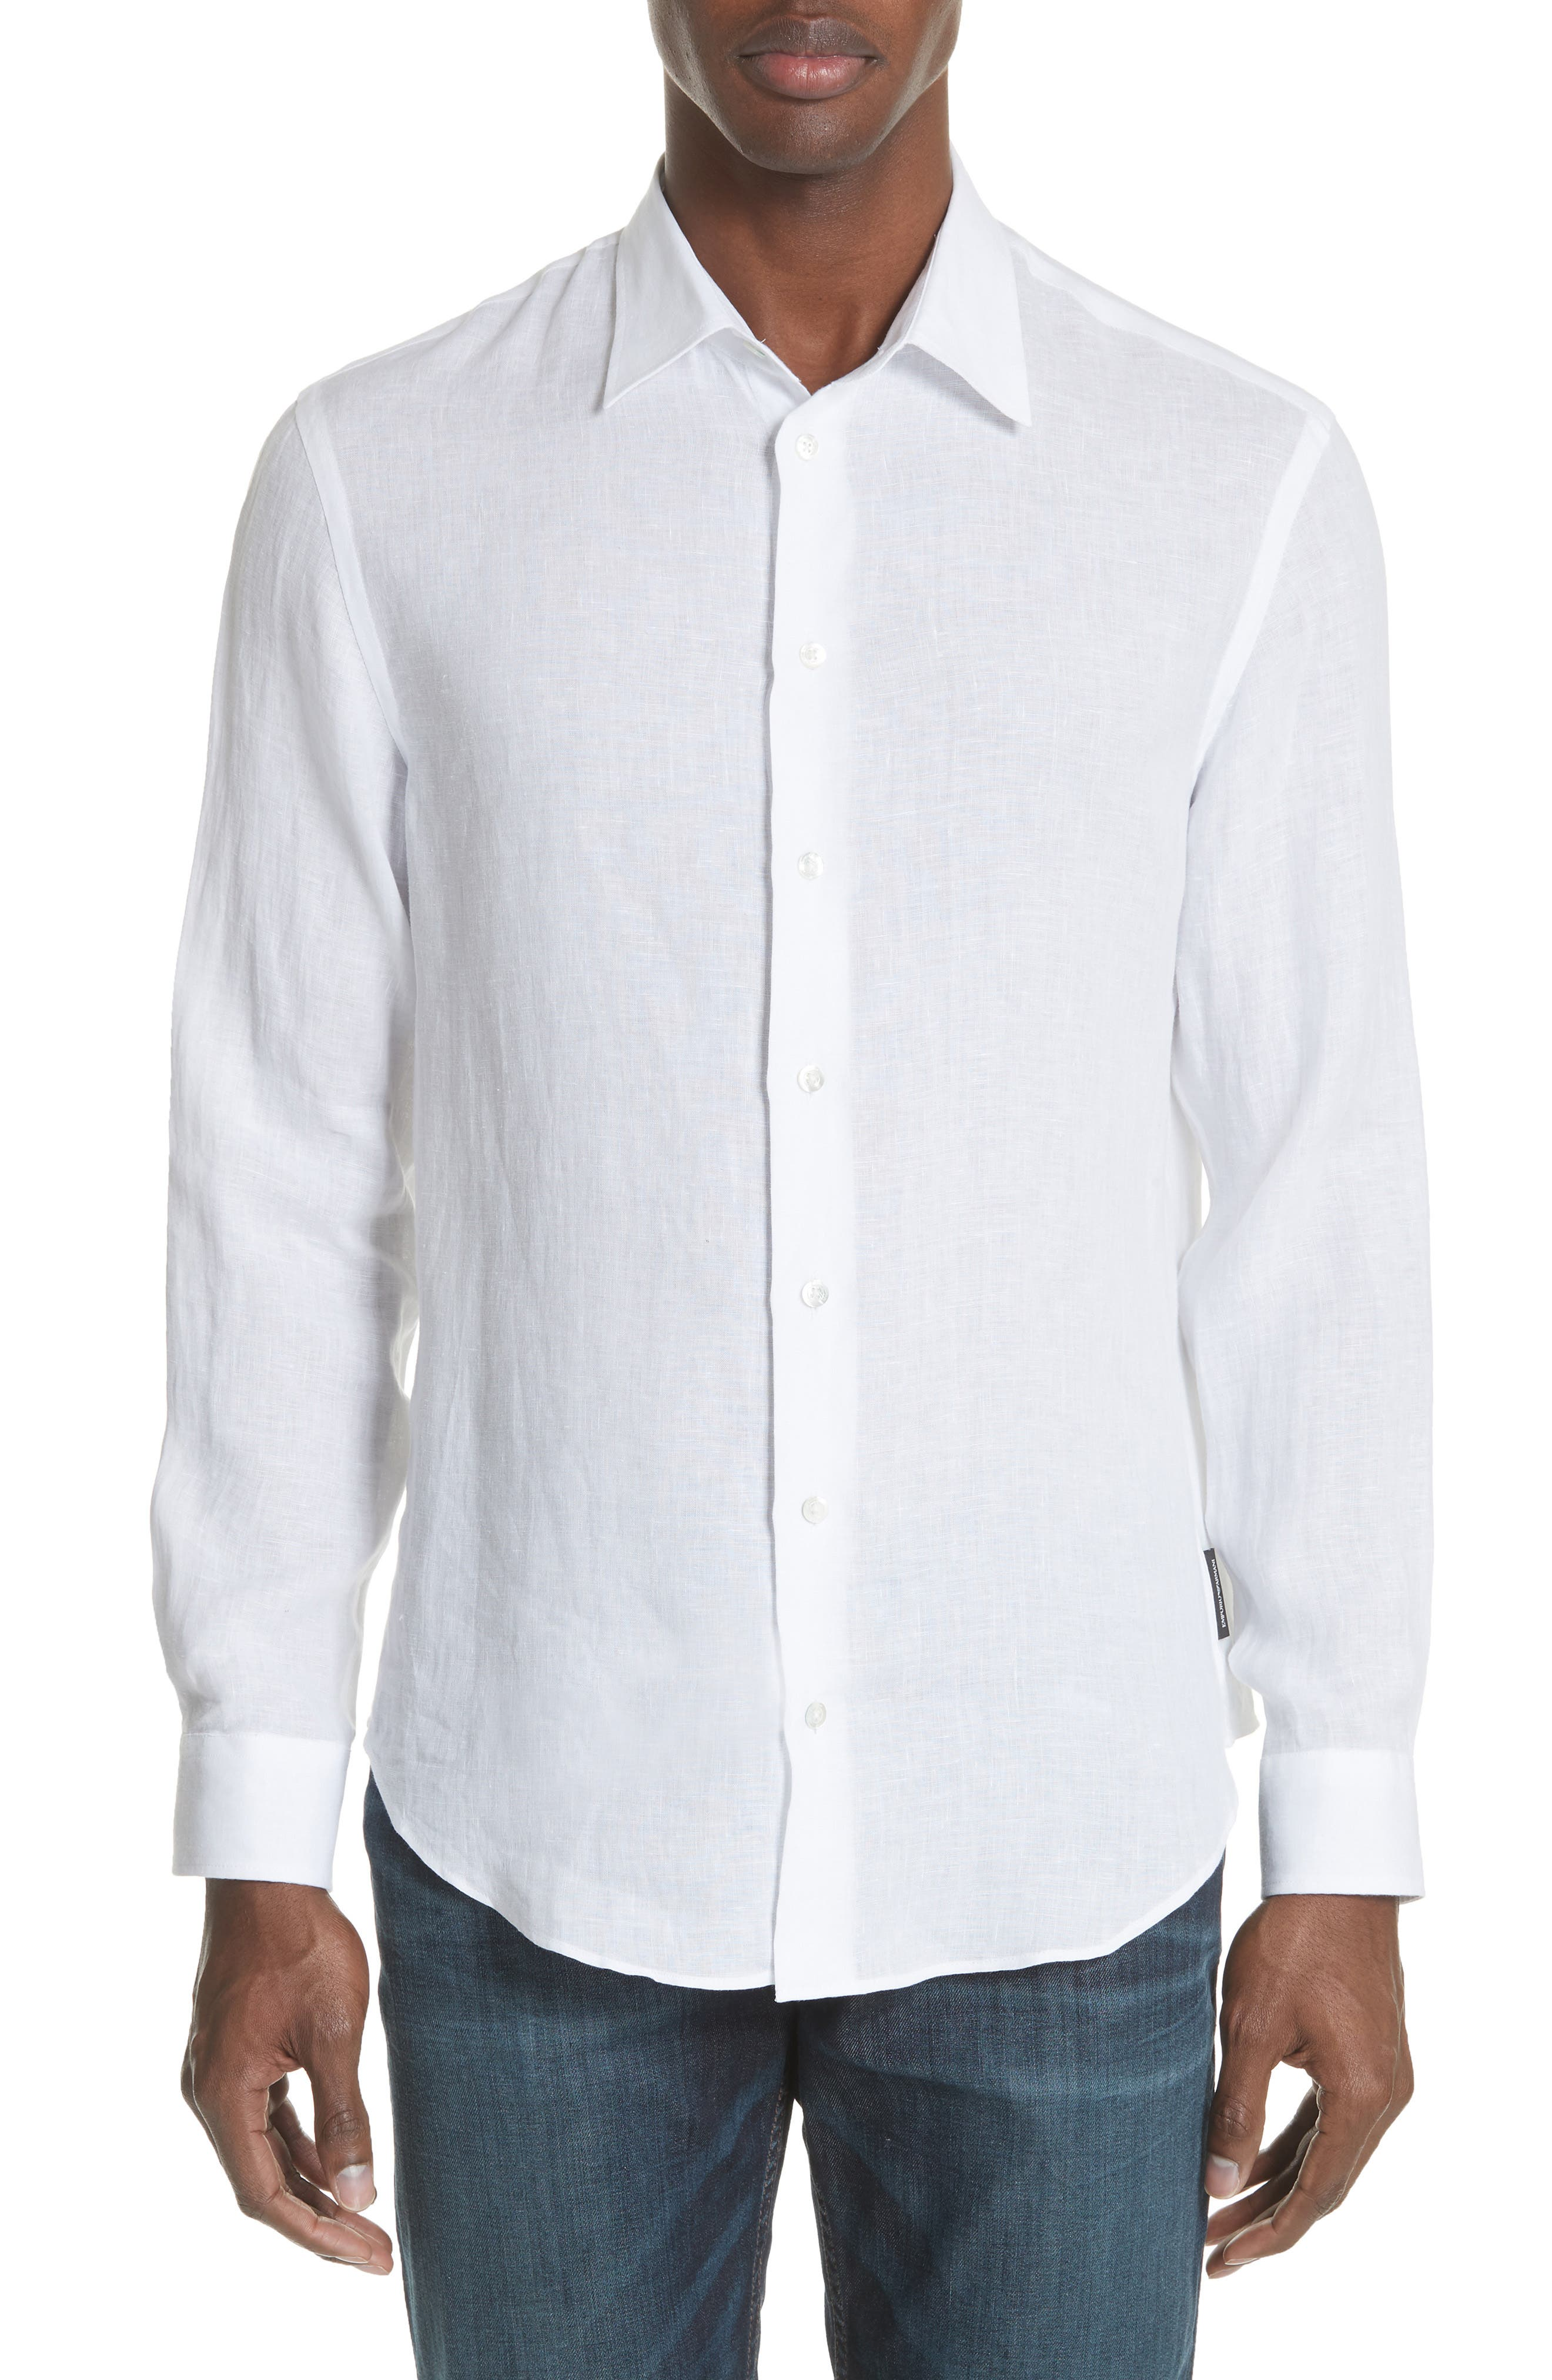 Regular Fit Linen Dress Shirt,                             Main thumbnail 1, color,                             White